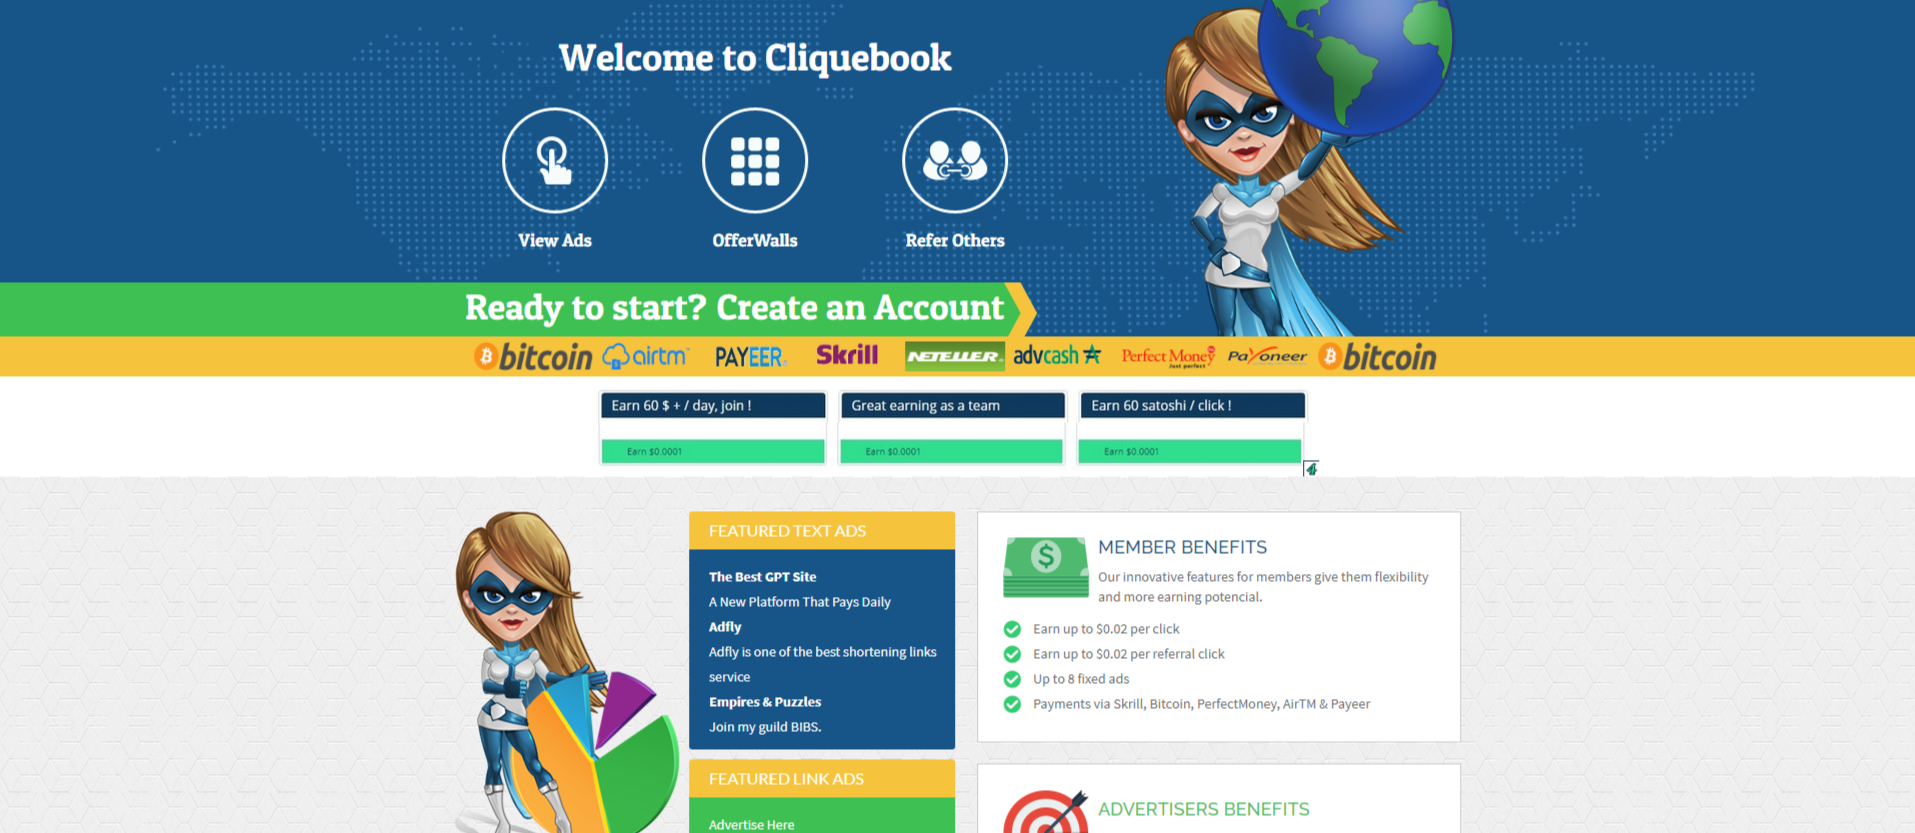 cliquebook.net Review – SCAM or LEGIT?